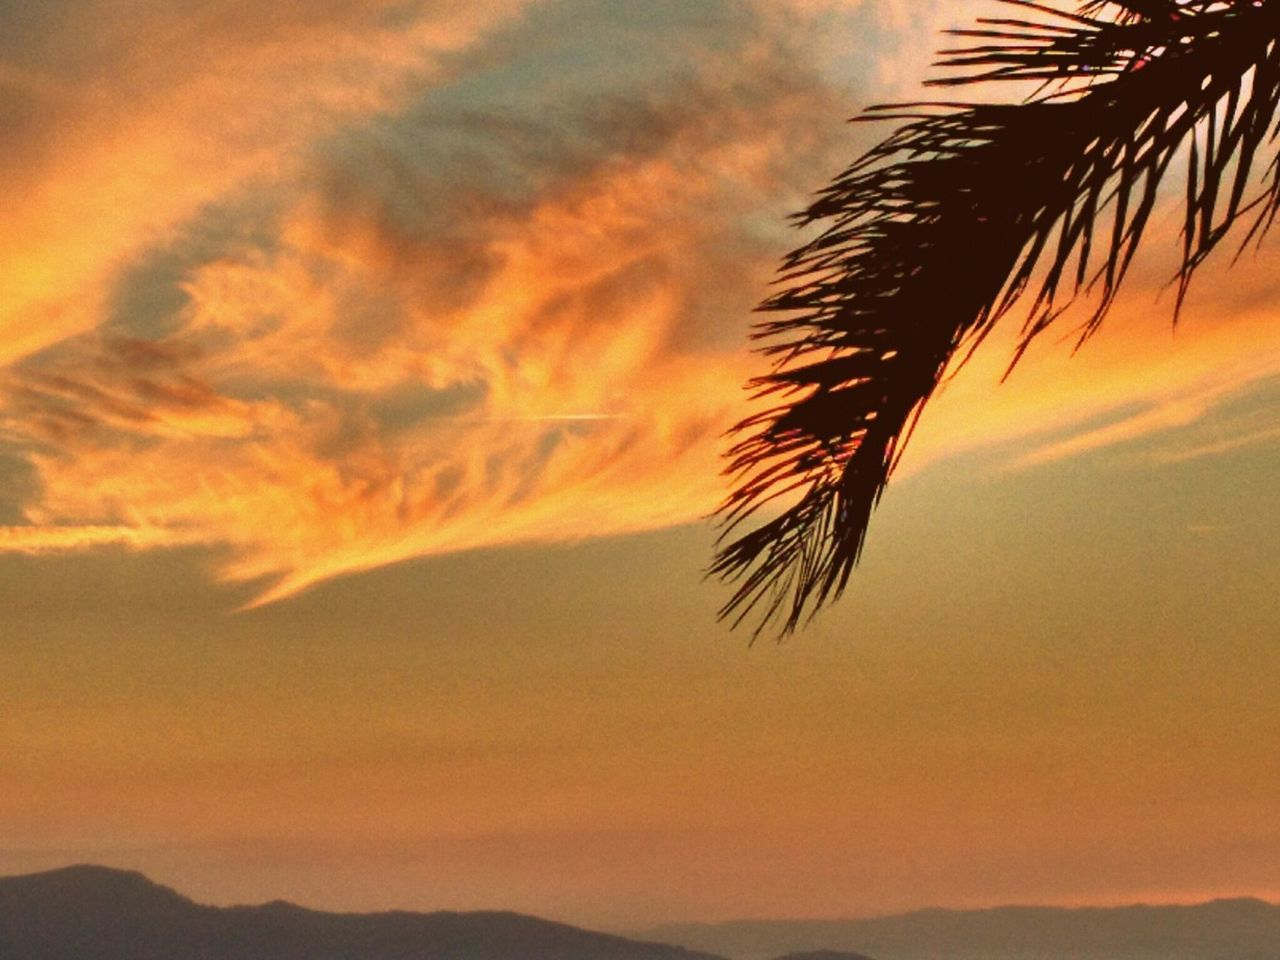 Por do sol na beira mar. Florianópolis - SC-Brasil Sunset Palm Tree Travel Scenics Sky Cloud - Sky Idyllic Silhouette Beauty In Nature Nature Multi Colored Tropical Climate Vacations Sea Outdoors Beauty No People Tree Horizon Over Water Water